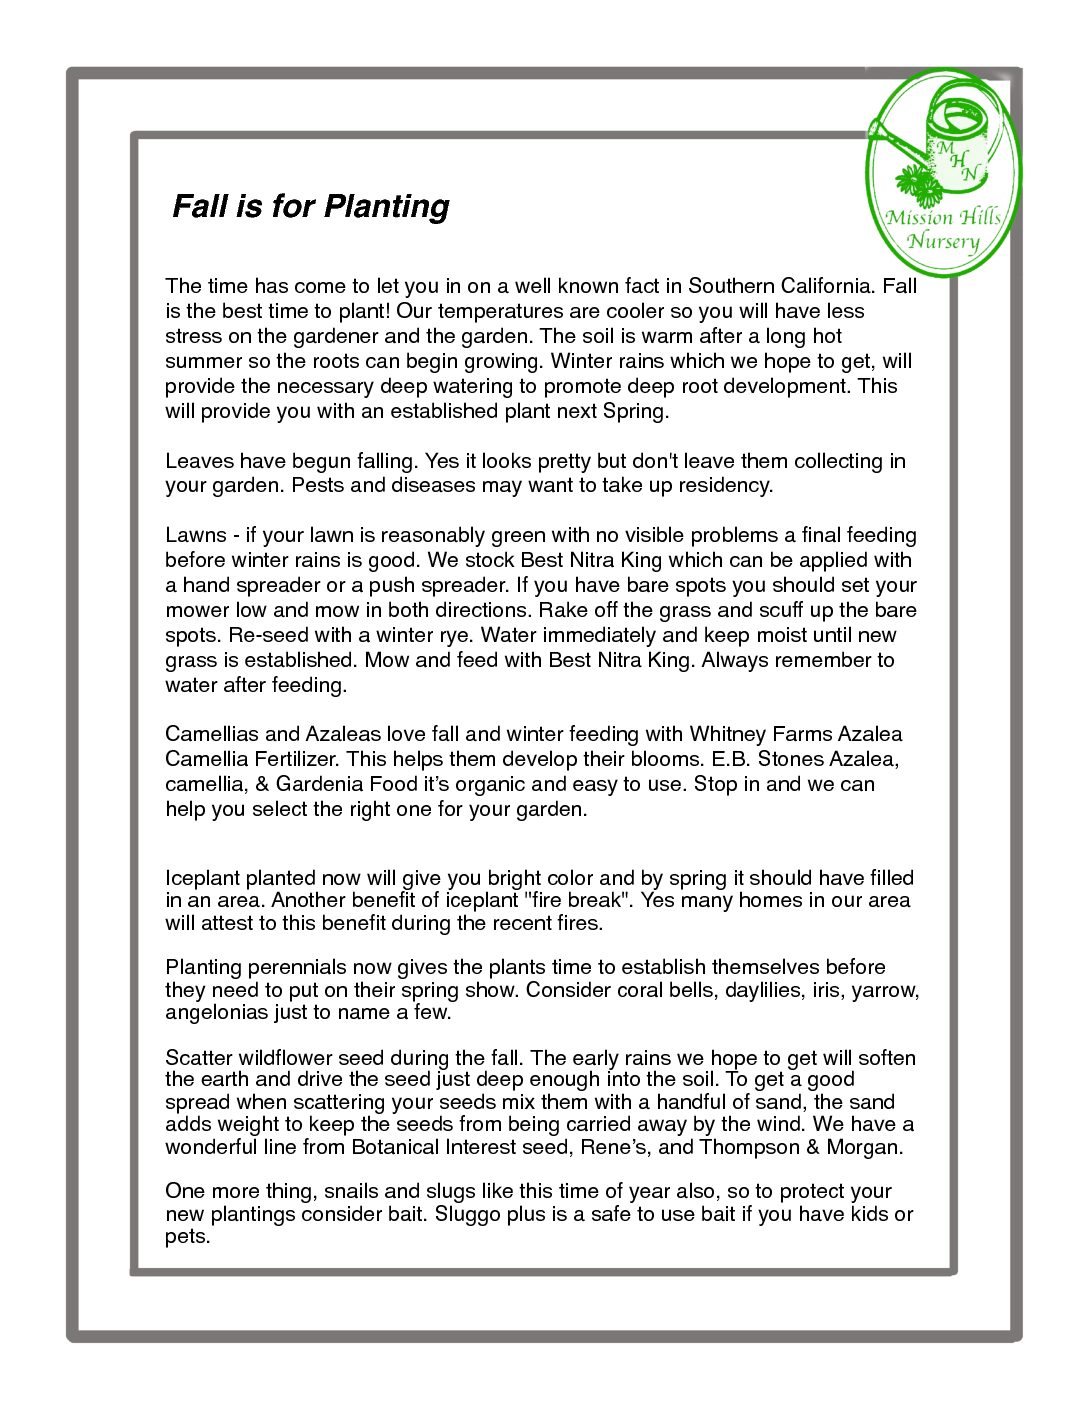 Fall Is For Planting Information